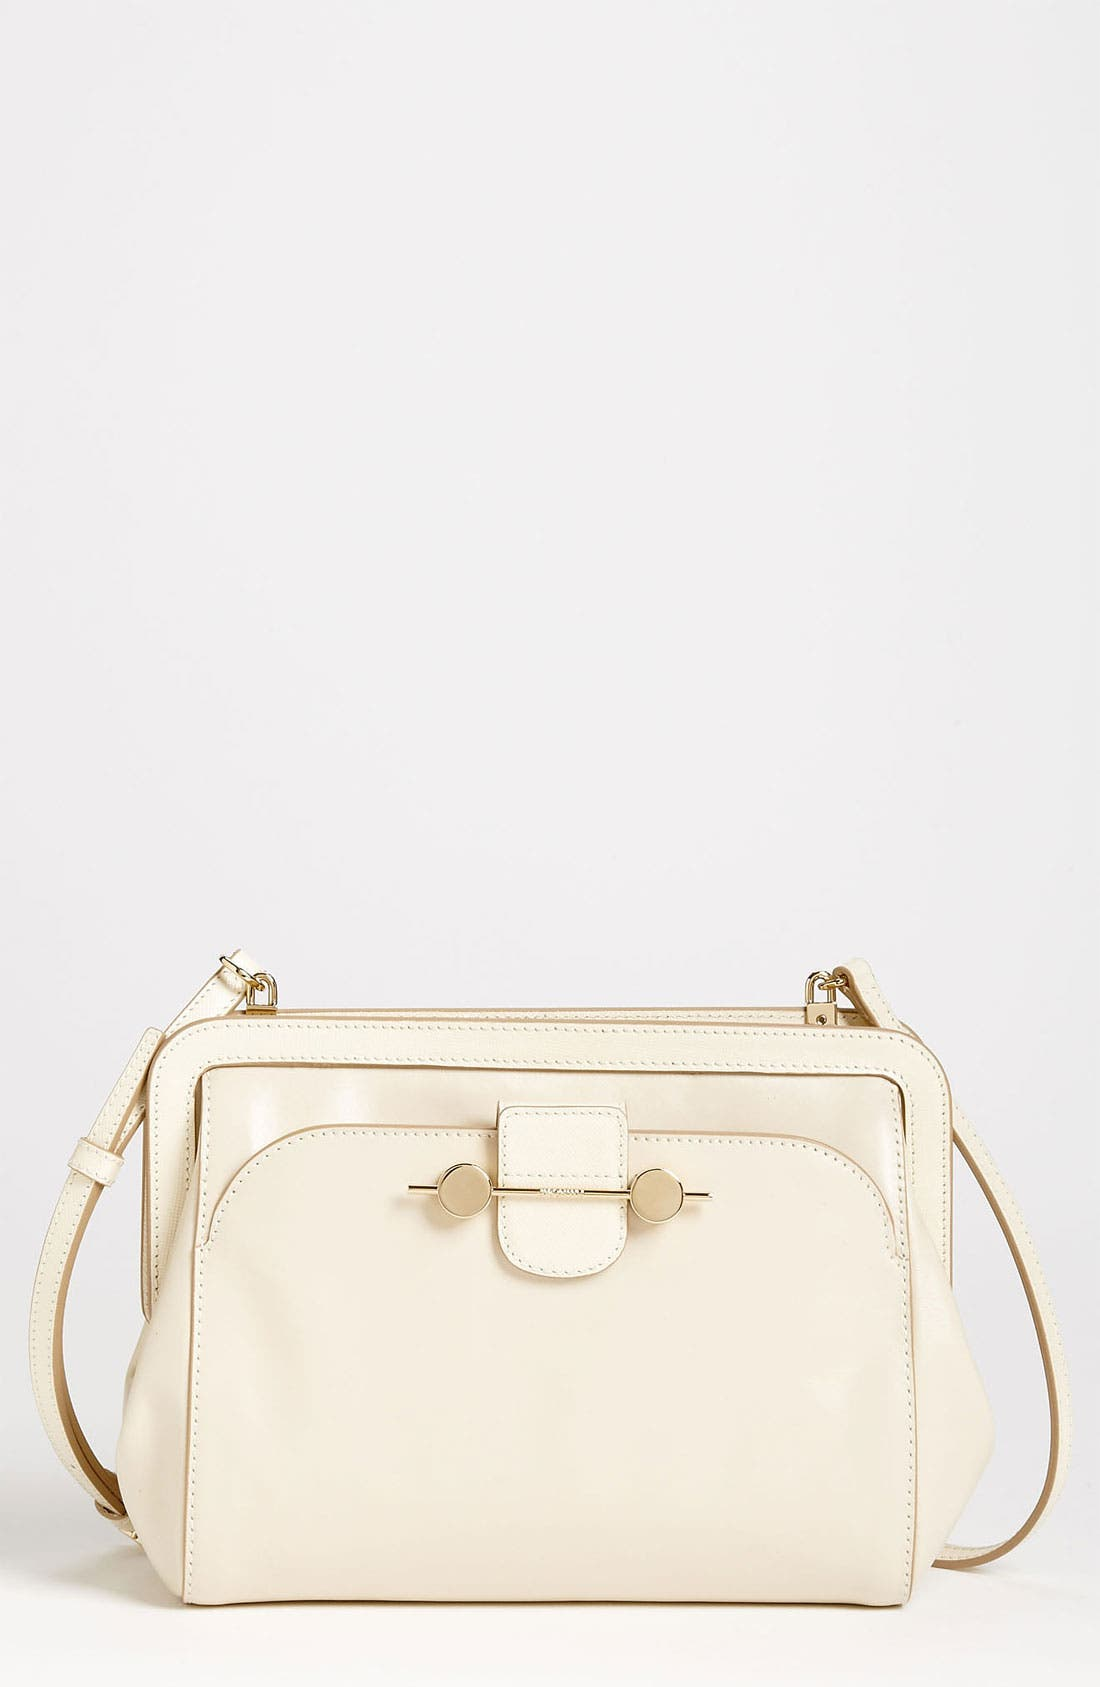 Alternate Image 1 Selected - Jason Wu 'Daphne' Leather Crossbody Bag